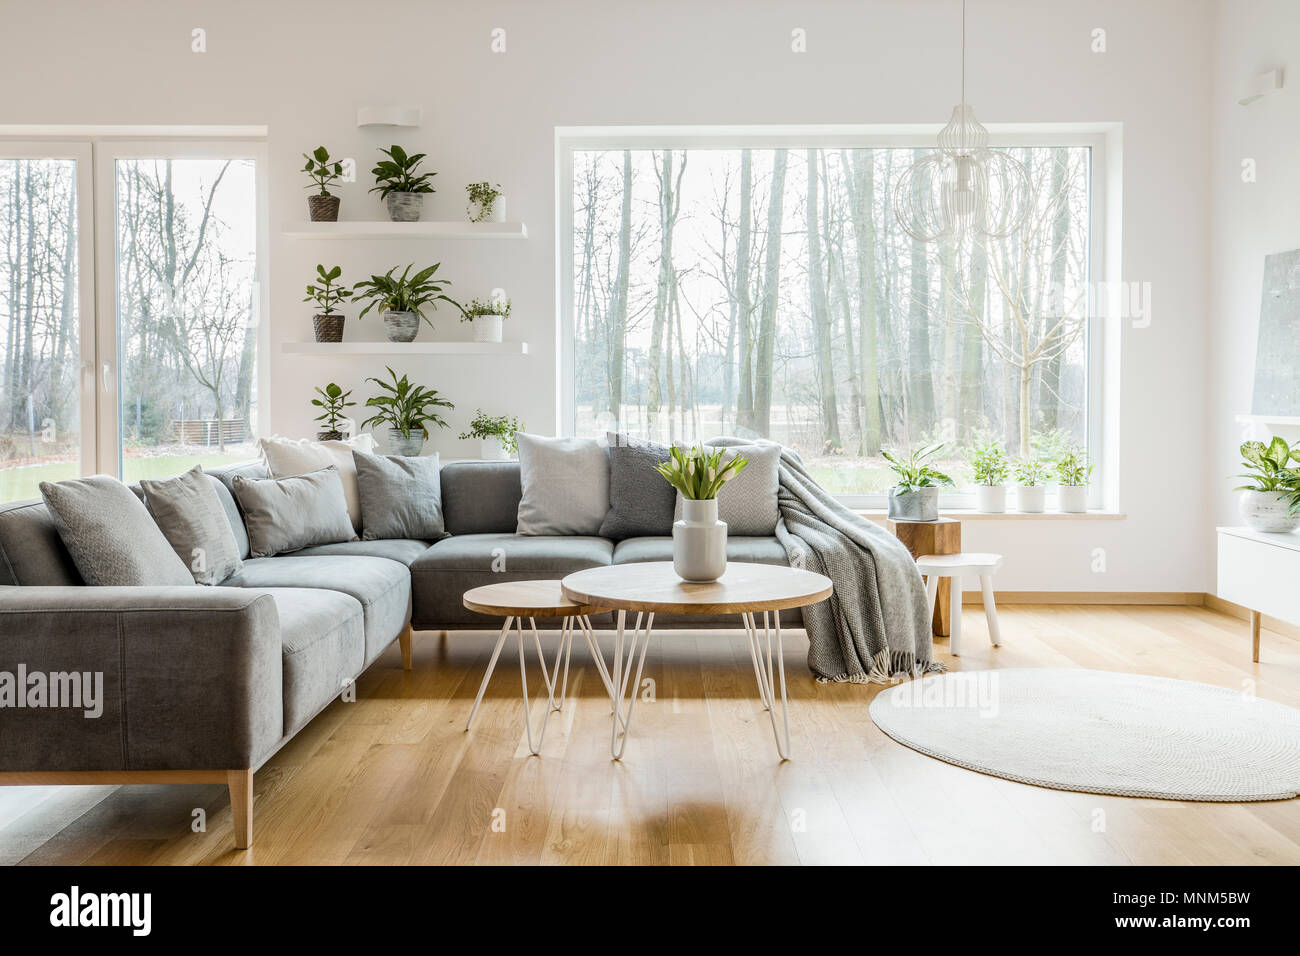 . Plants on shelves next to a window in natural living room interior